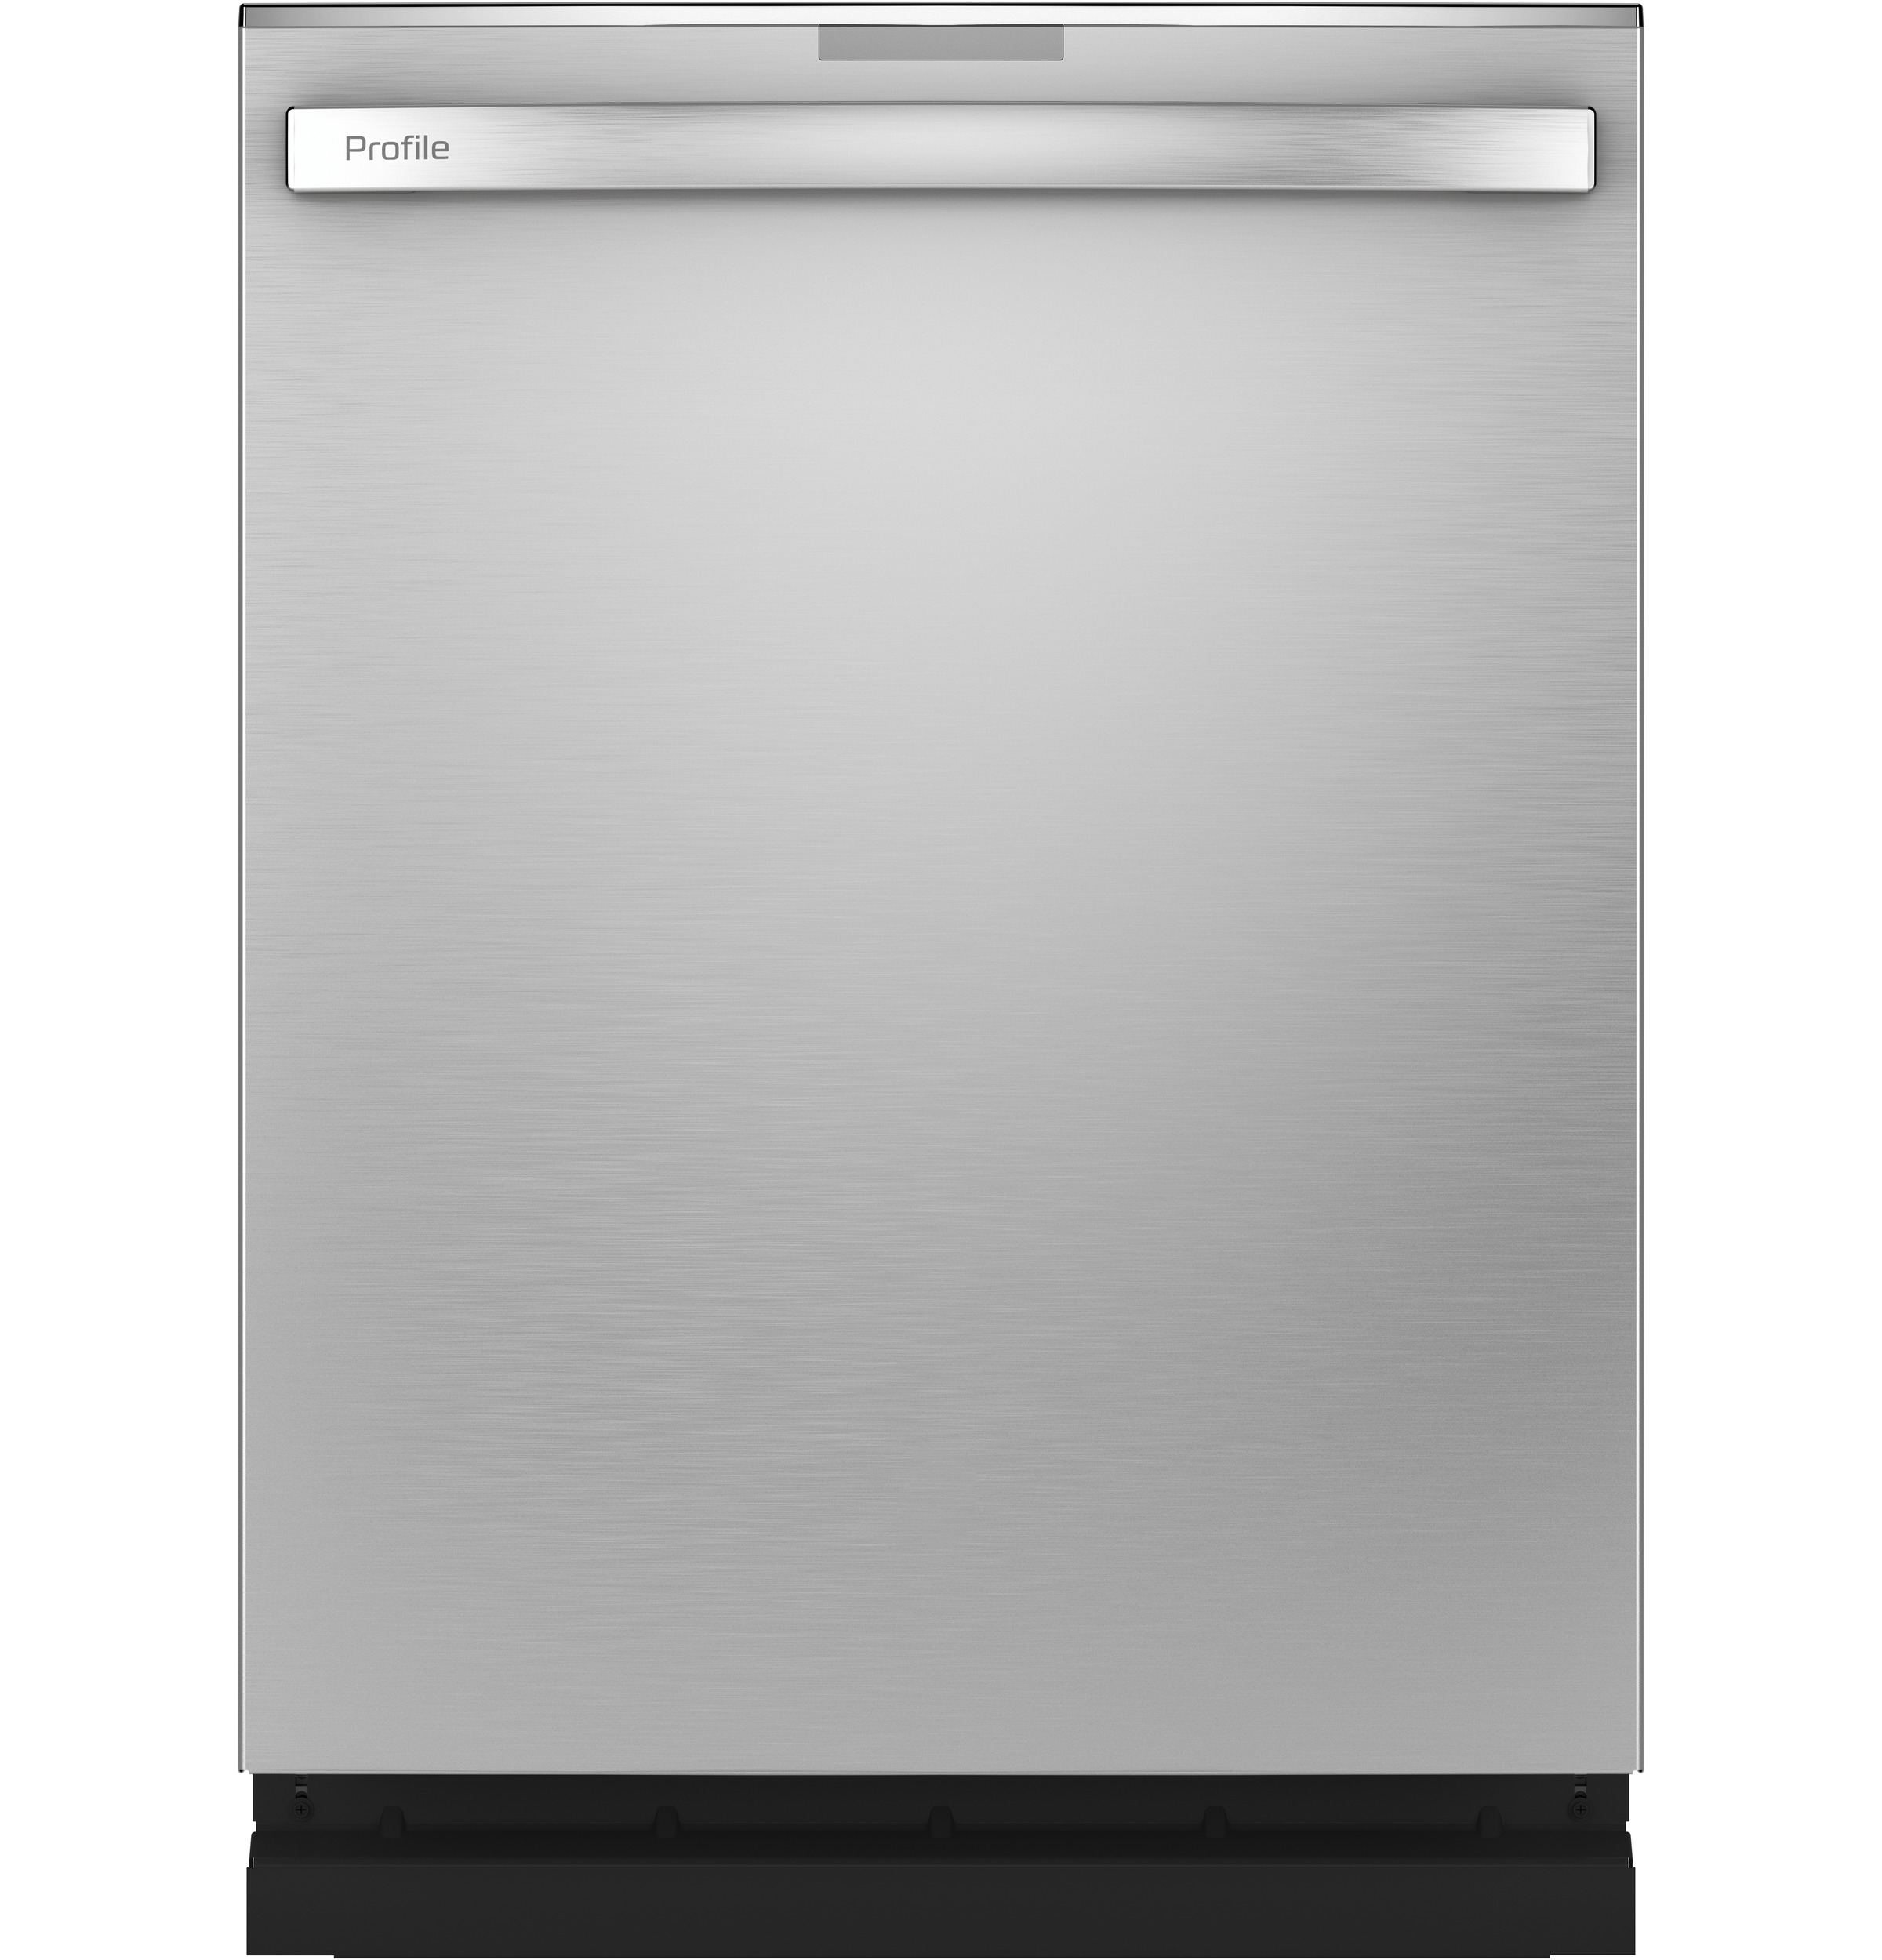 GE Profile GE Profile™ Fingerprint Resistant Top Control with Stainless Steel Interior Dishwasher with Sanitize Cycle & Twin Turbo Dry Boost